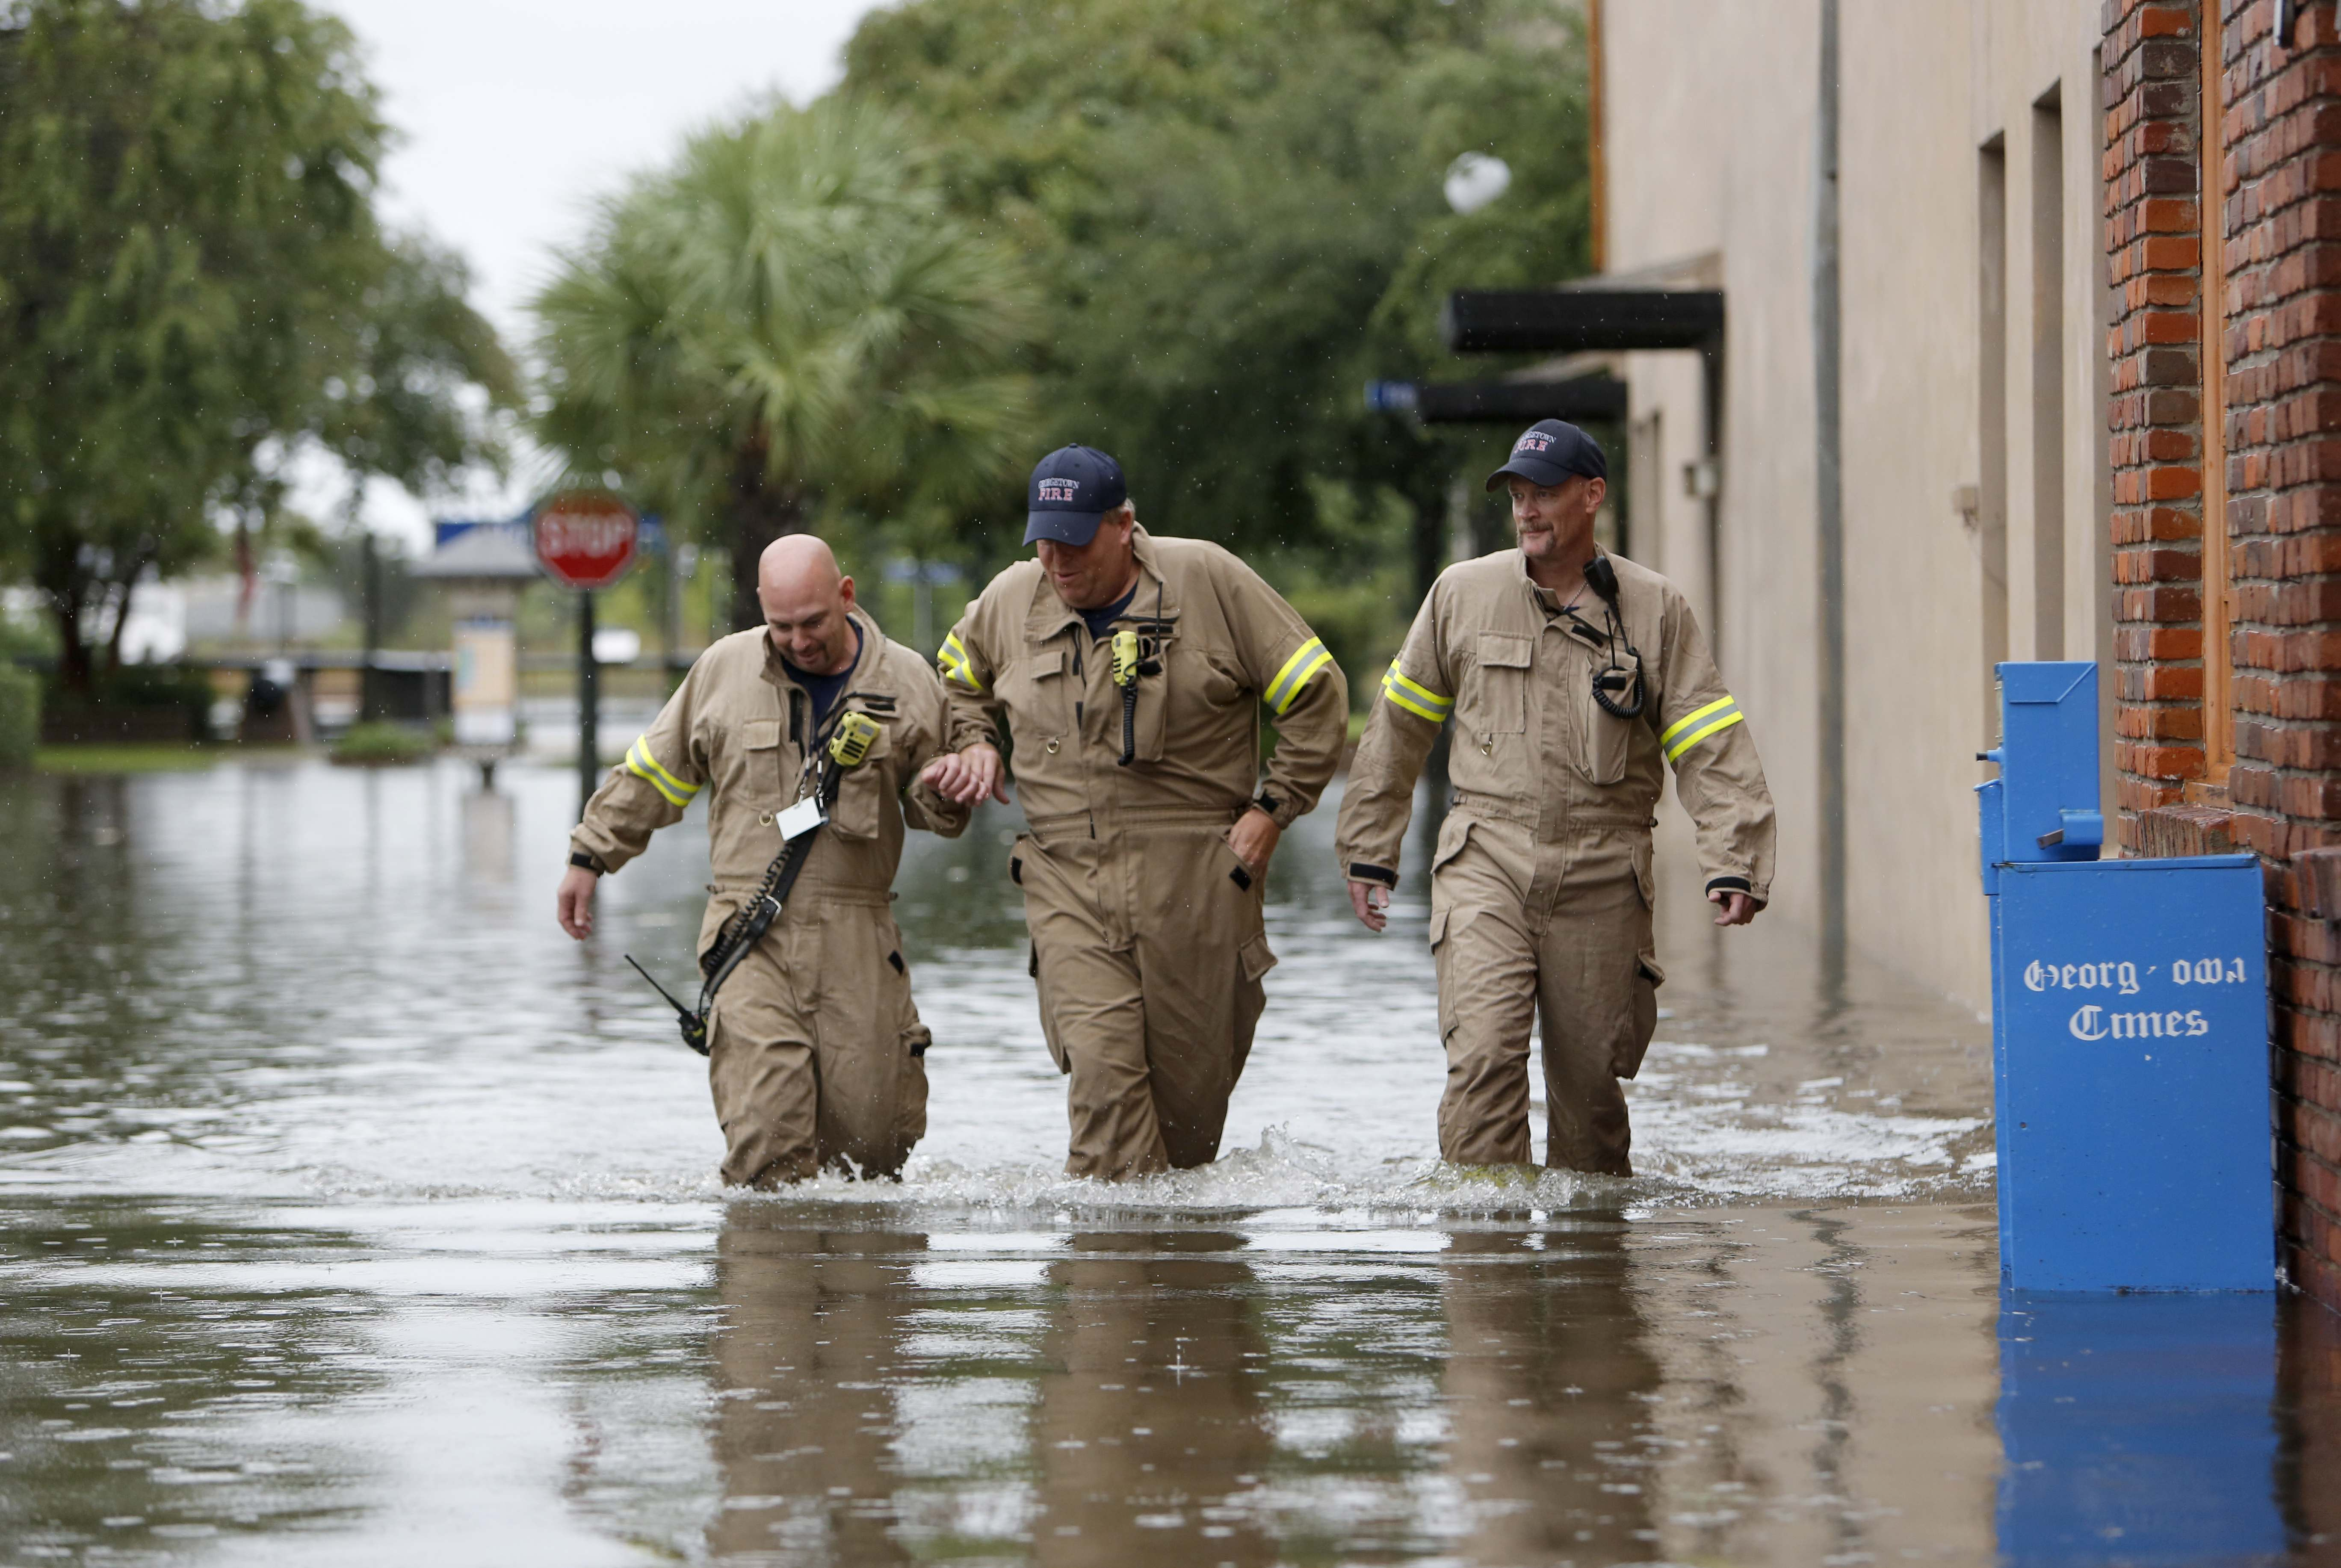 Firemen, from left to right, Norman Beauregard, Kevin Ettenger and Chris Rodgers with the Georgetown Fire Department, inspect the flood waters at high tide in the historic downtown in Georgetown, S.C., Sunday, Oct. 4